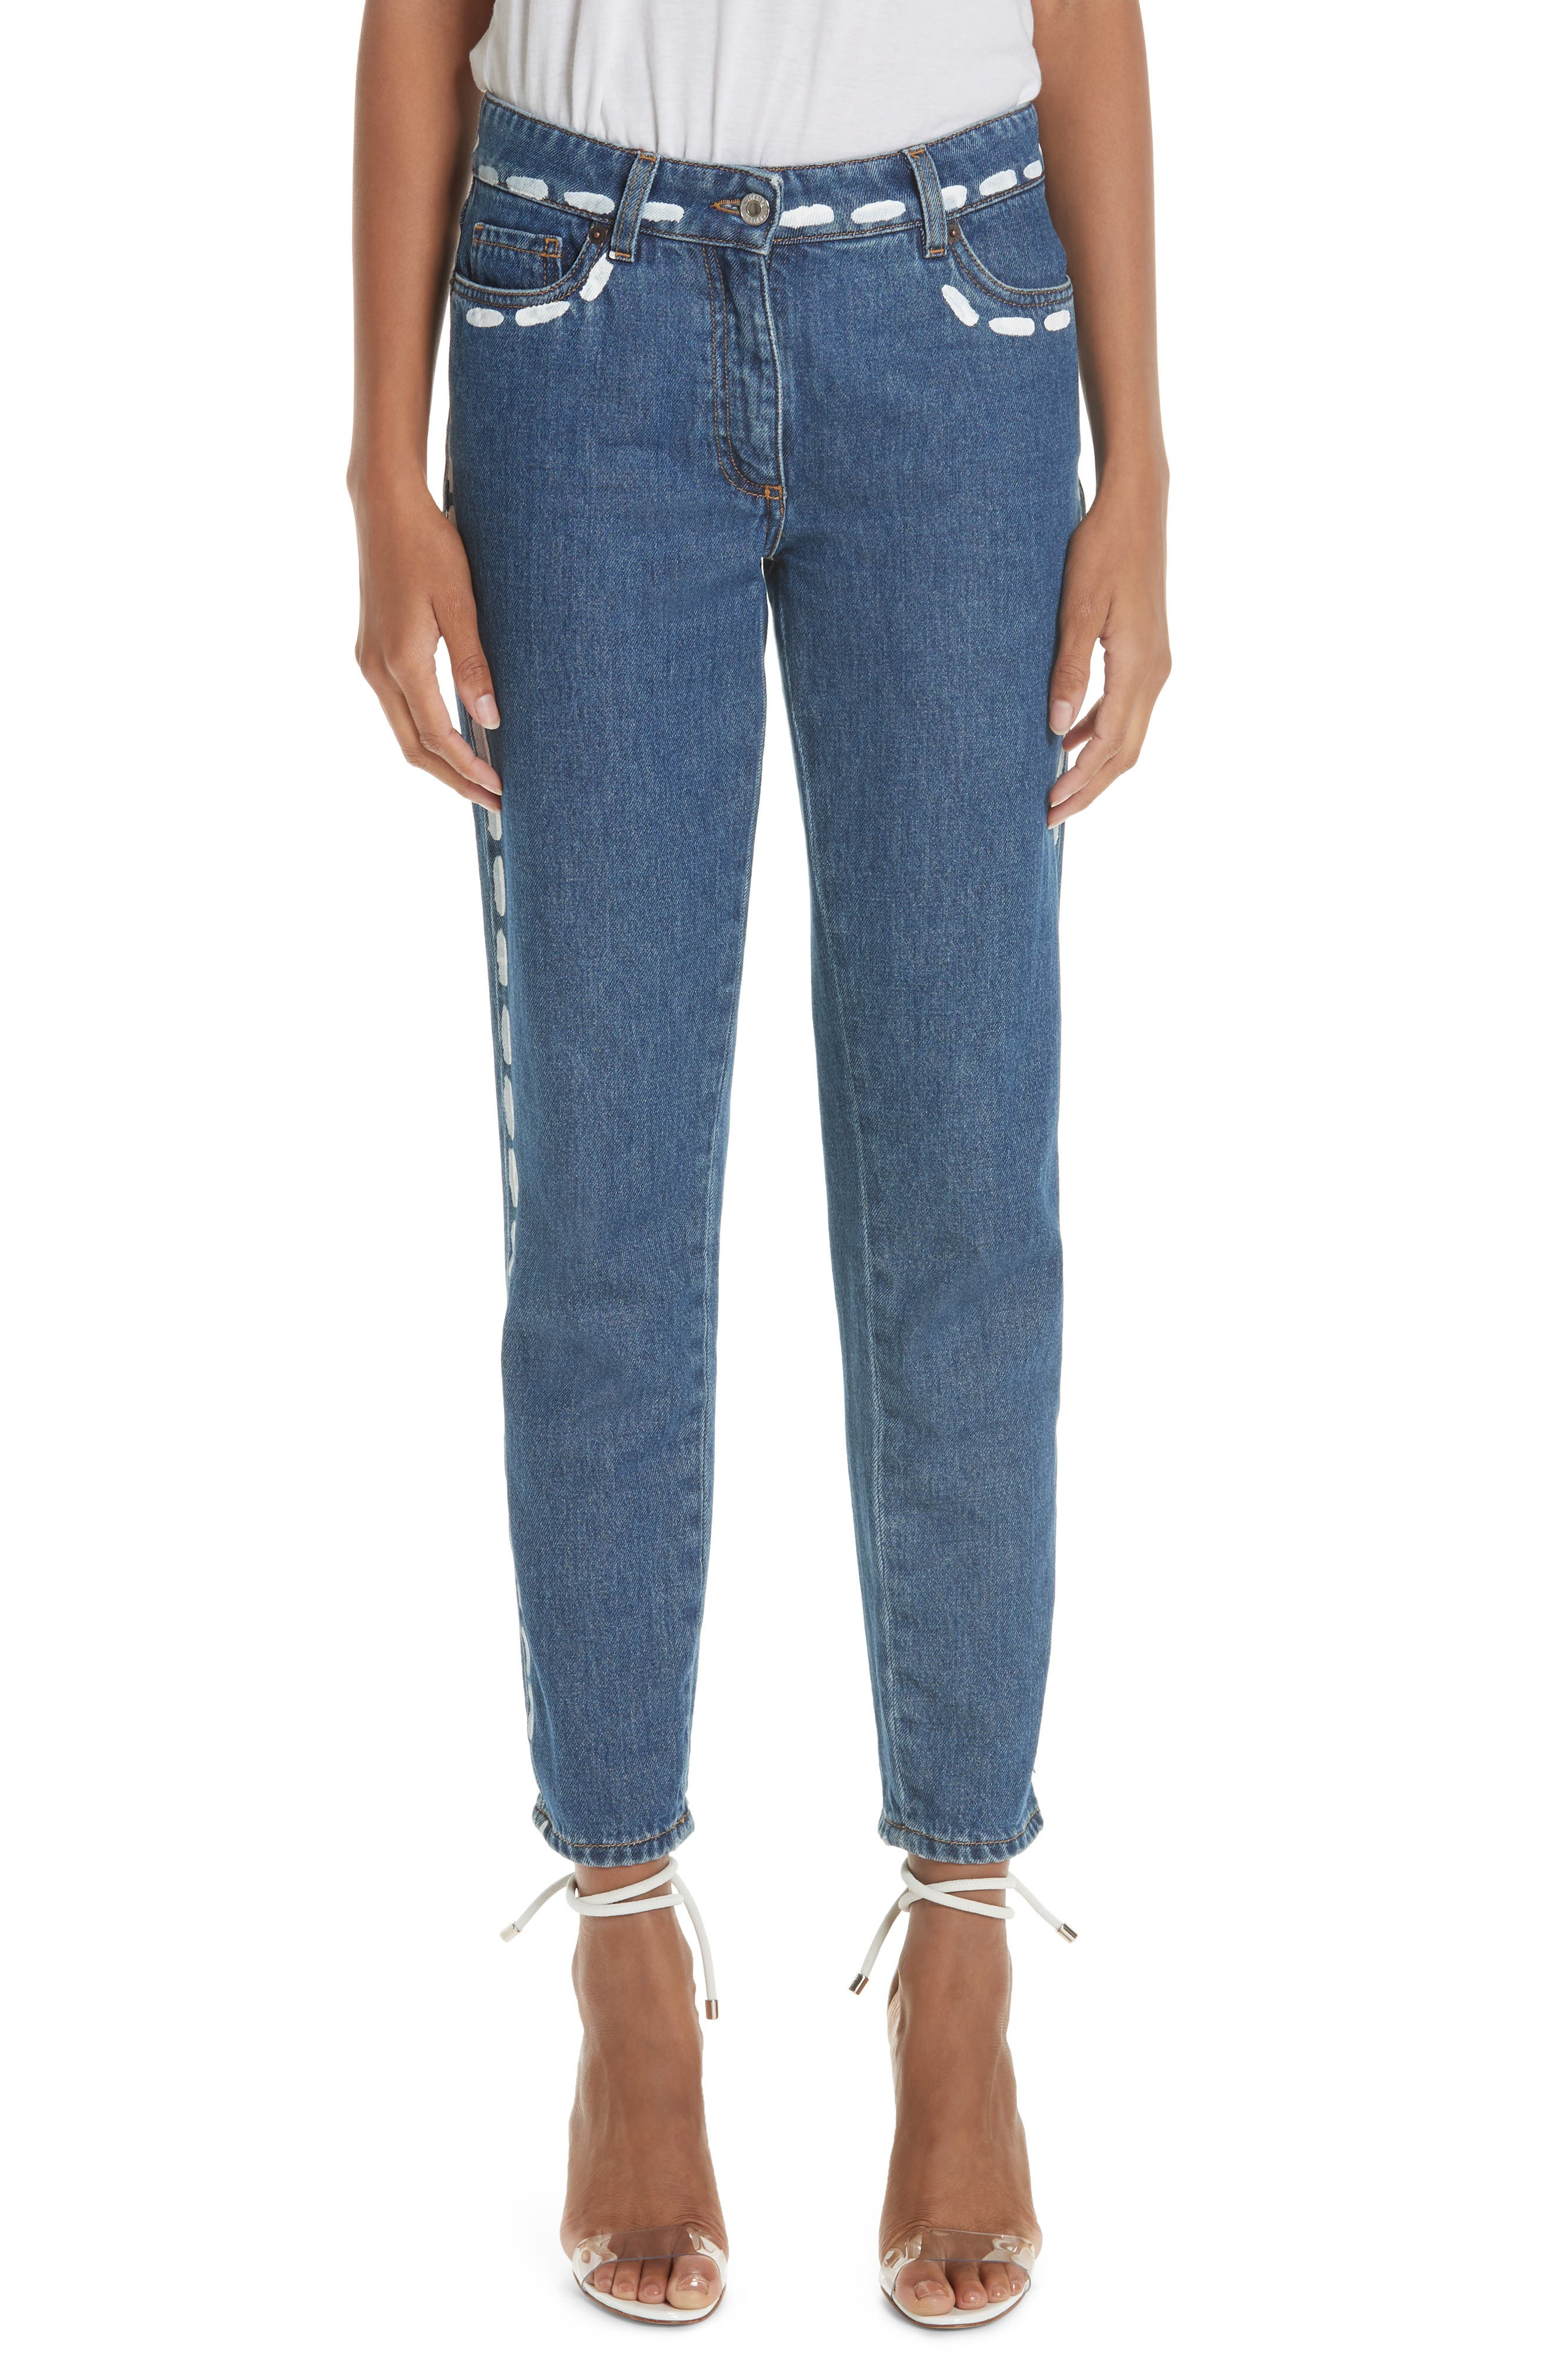 MOSCHINO,                             Dotted Line Straight Leg Jeans,                             Main thumbnail 1, color,                             DENIM